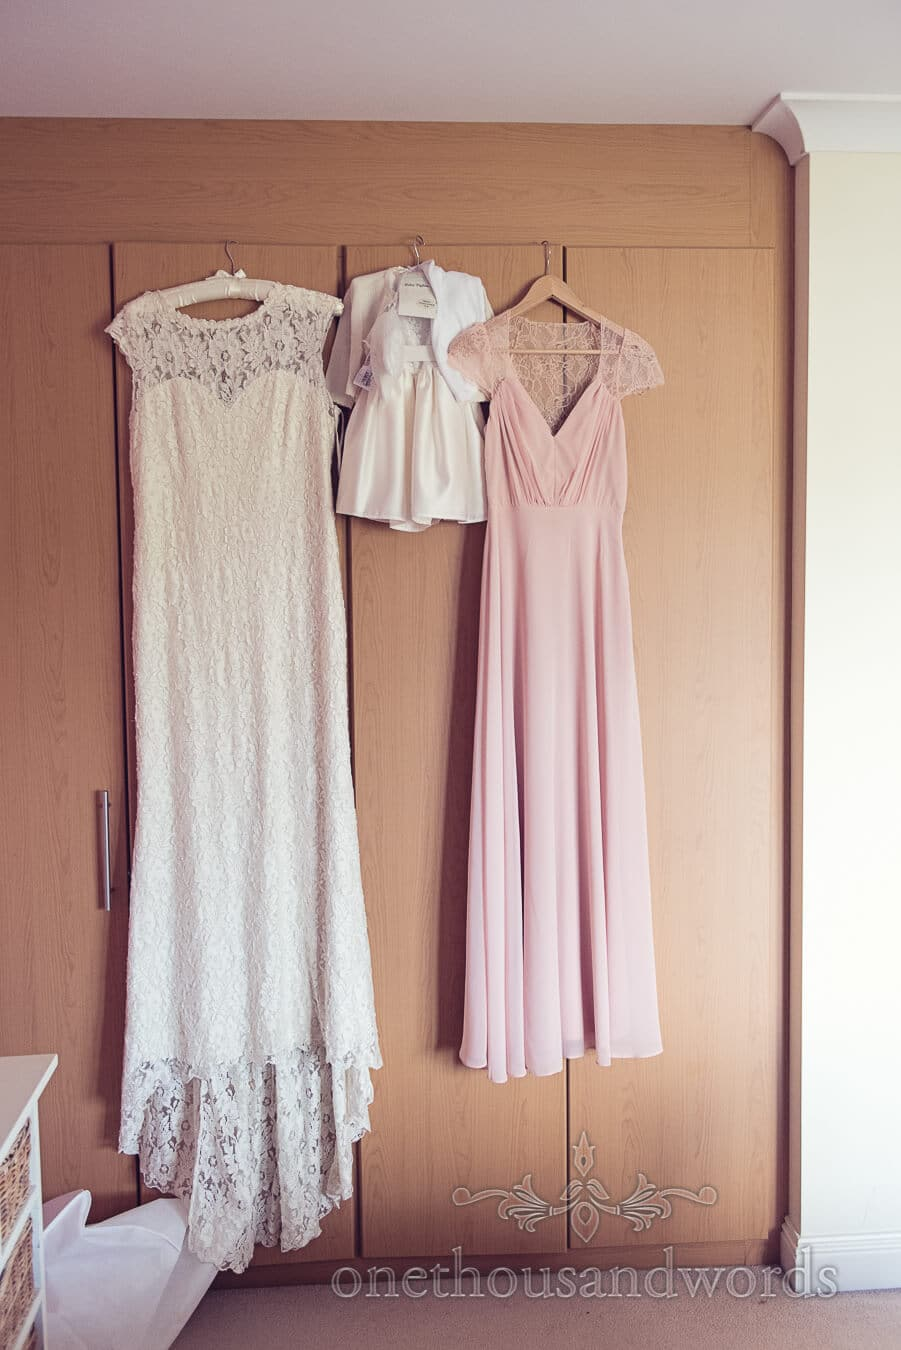 Dresses hang in bedroom before Purbeck Golf Club Wedding